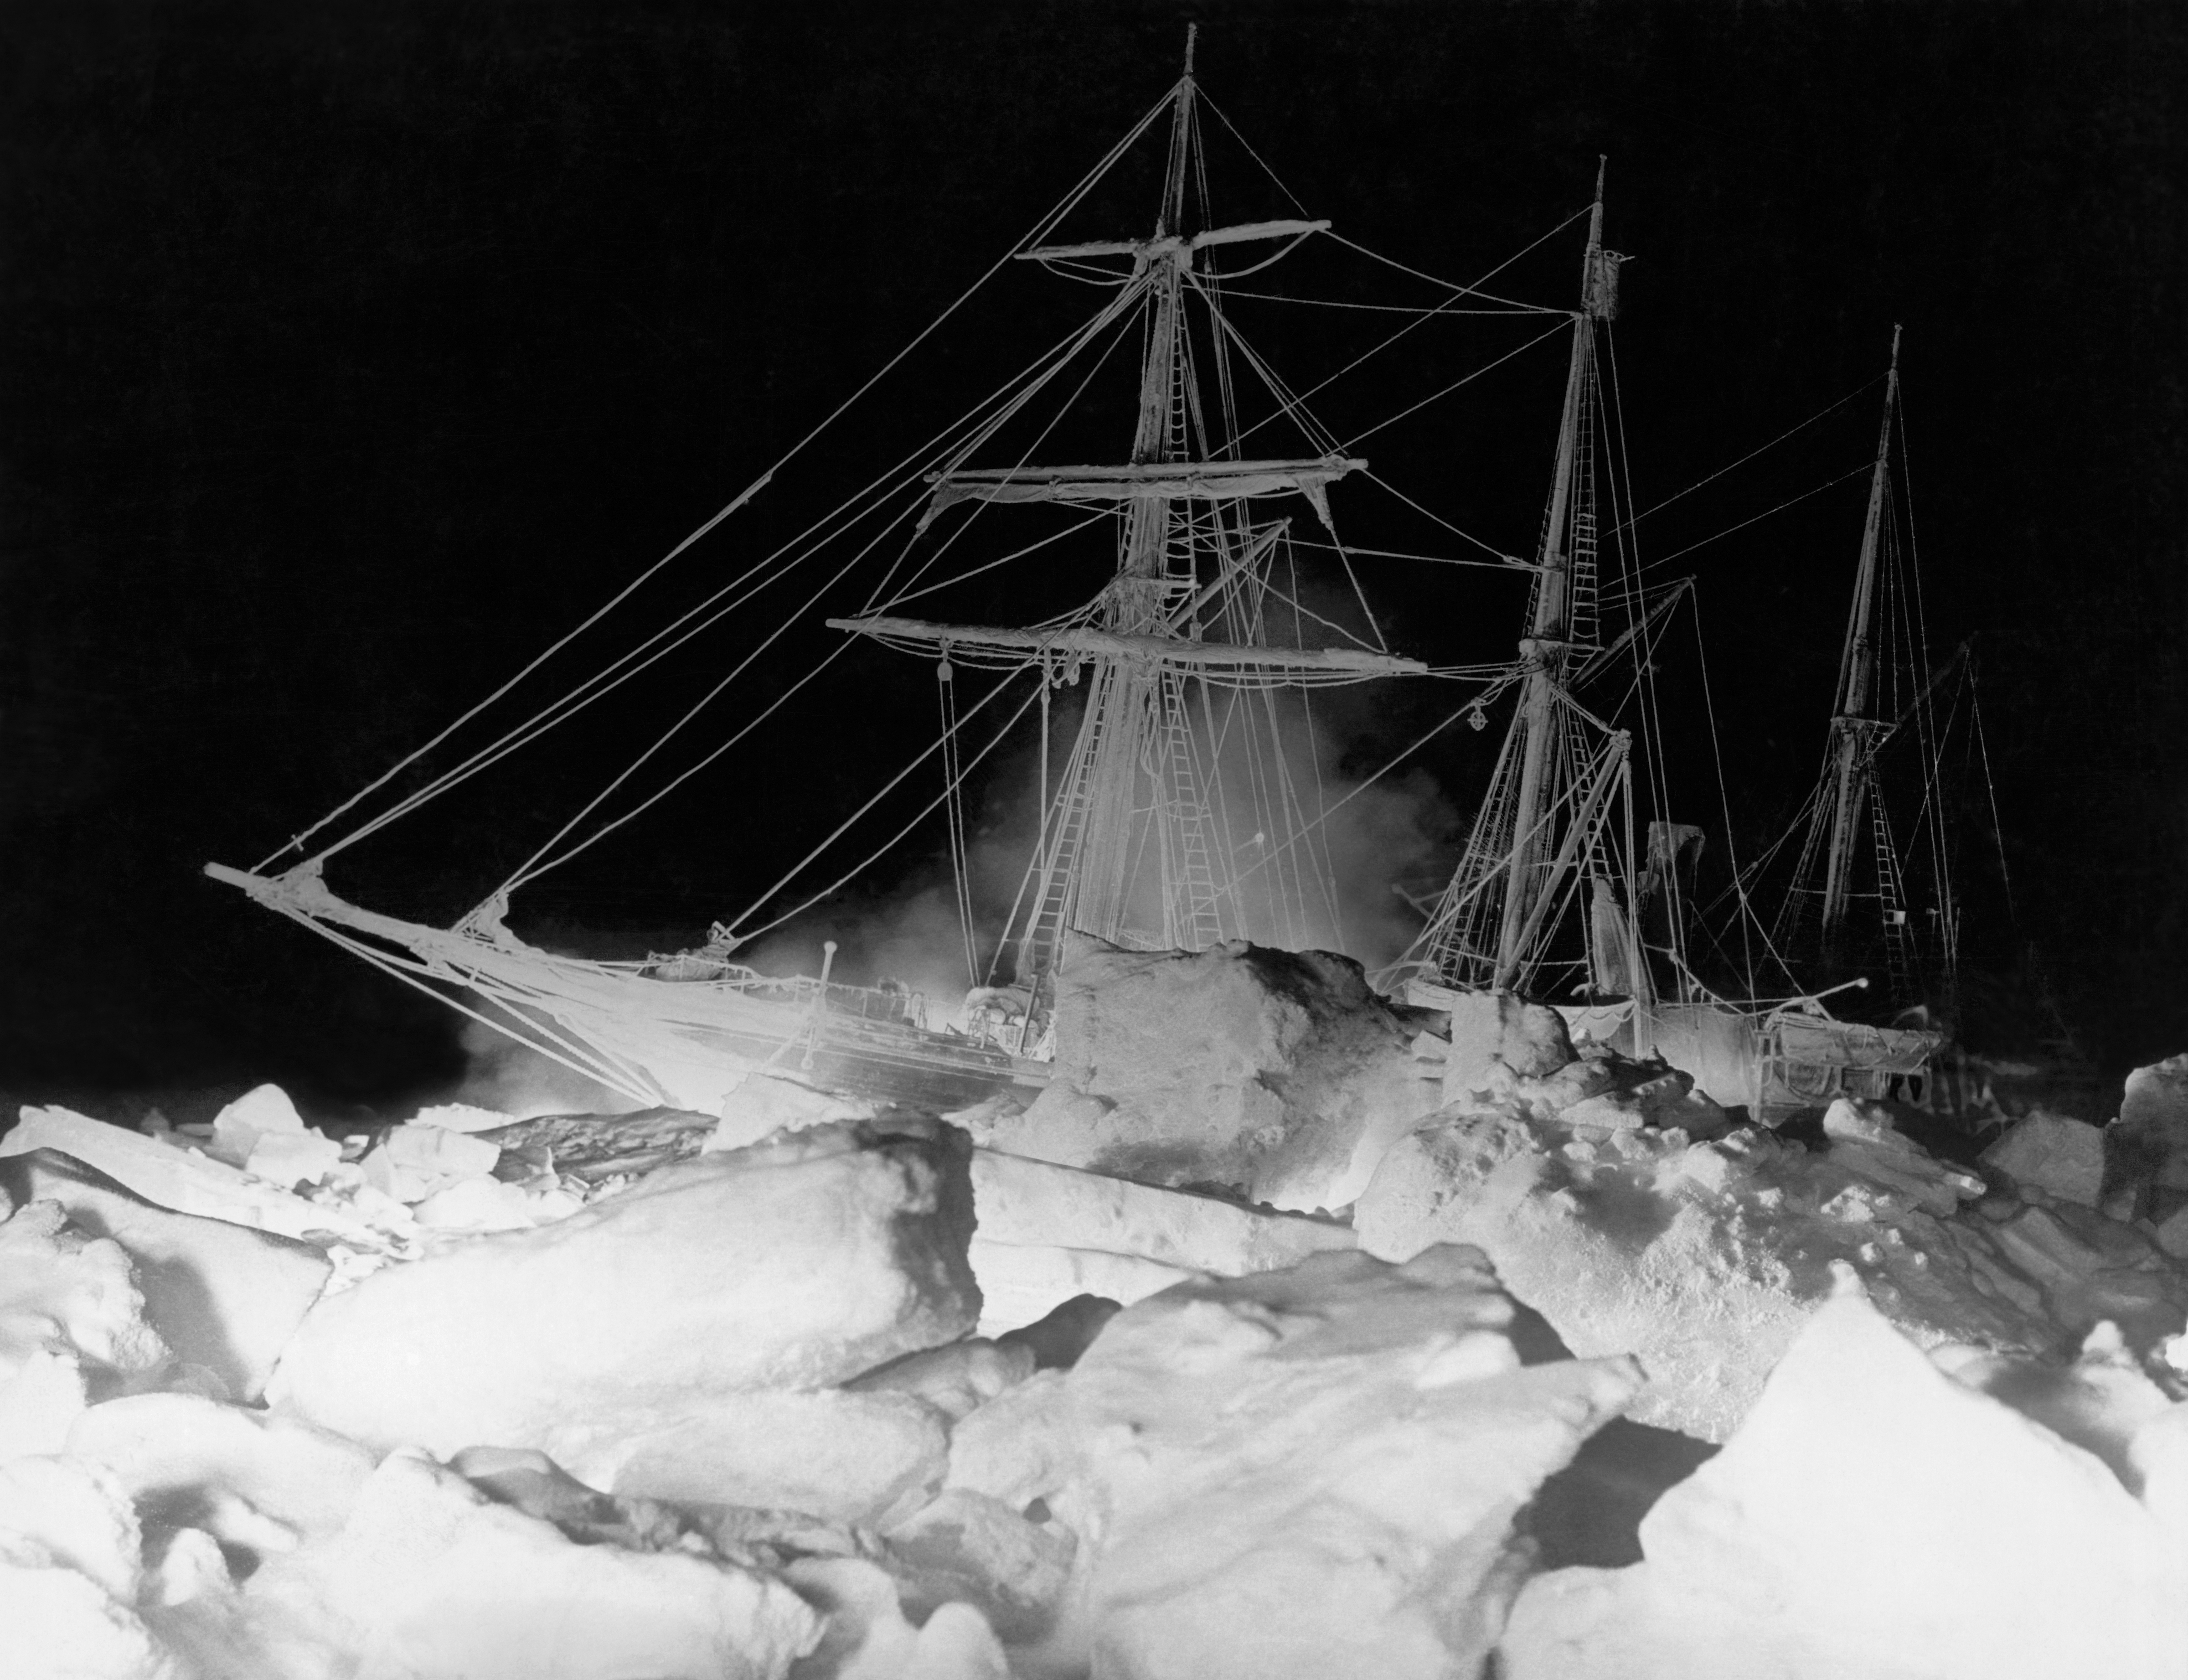 Antarctic search closes in on Endurance, the lost ship of explorer Ernest Shackleton thumbnail